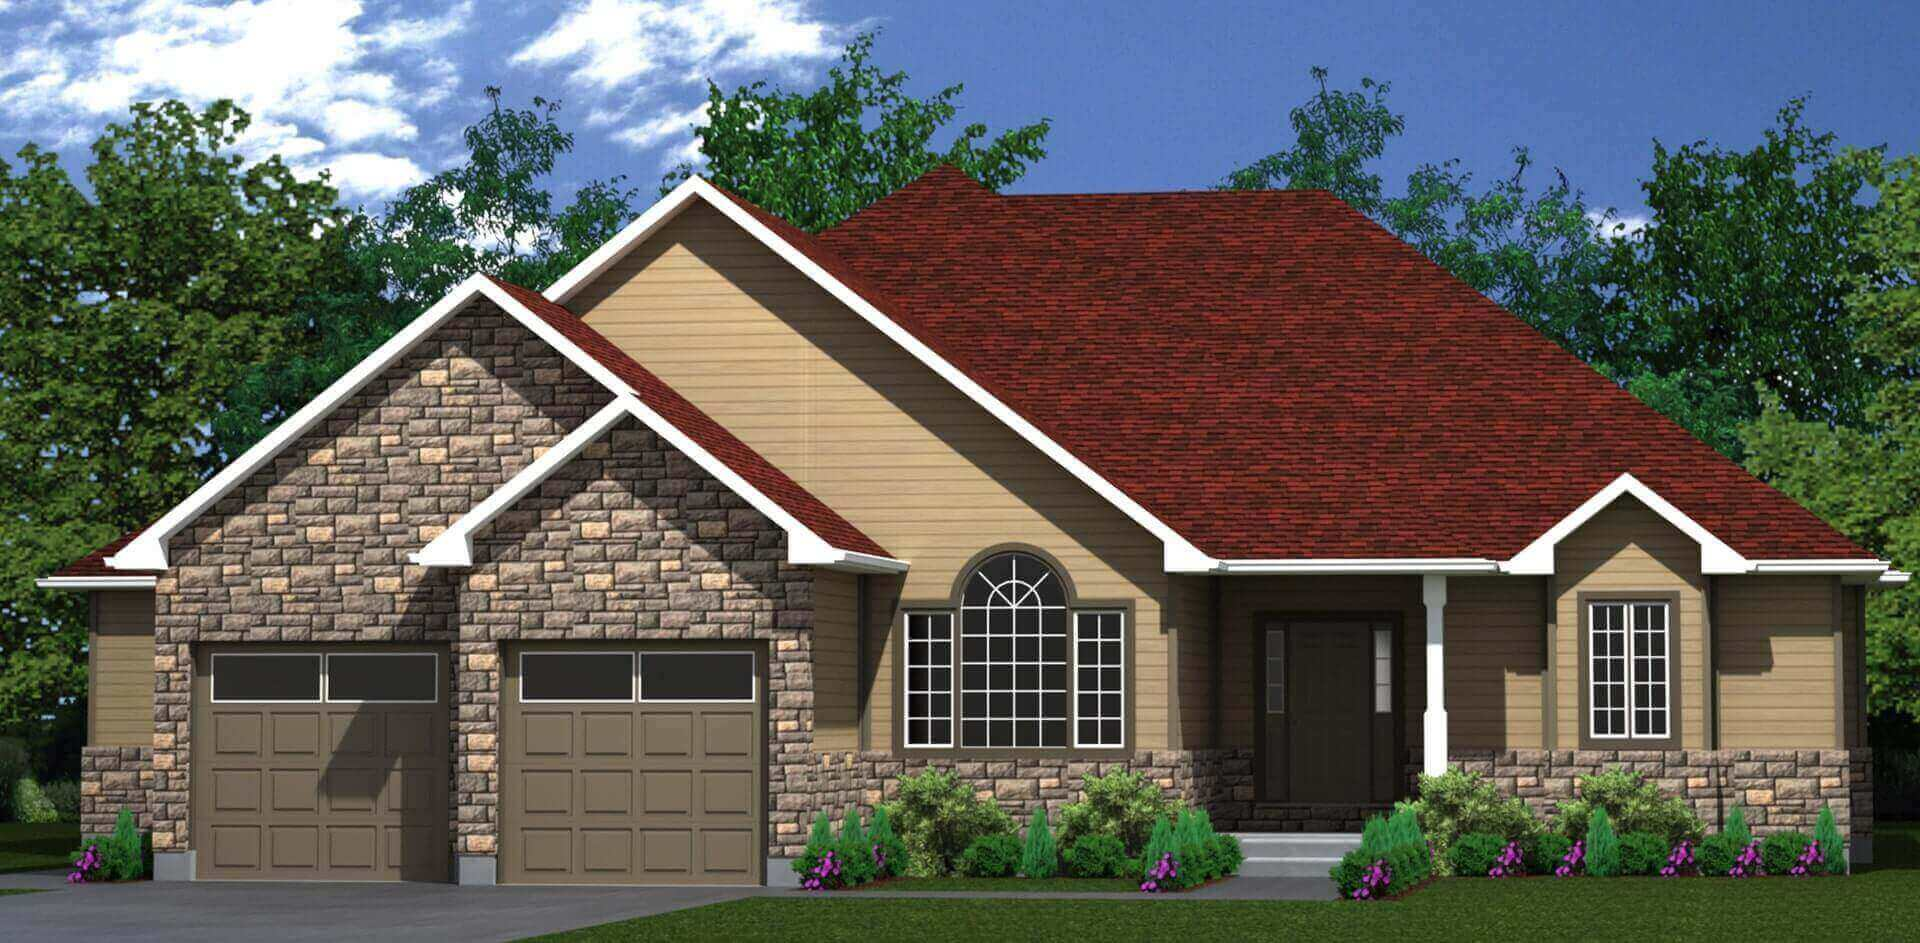 2567 sq.ft. timber mart house 3 bed 3 bath exterior render